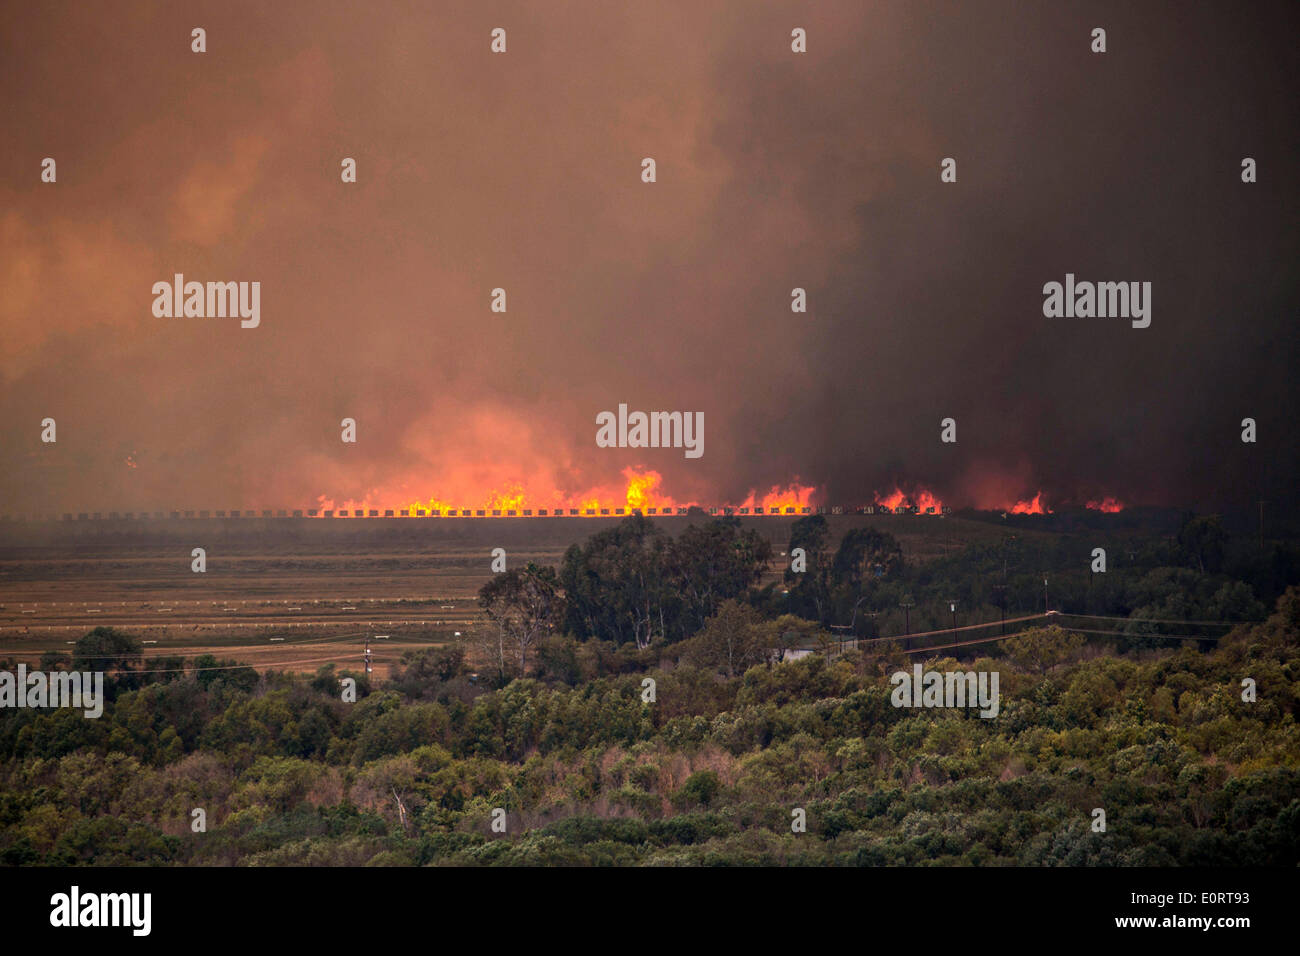 The Las Pulgas wildfire burns through the rifle range in the foothills around the Marine Corps Air Station May 16, 2014 in Camp Pendleton, California. - Stock Image